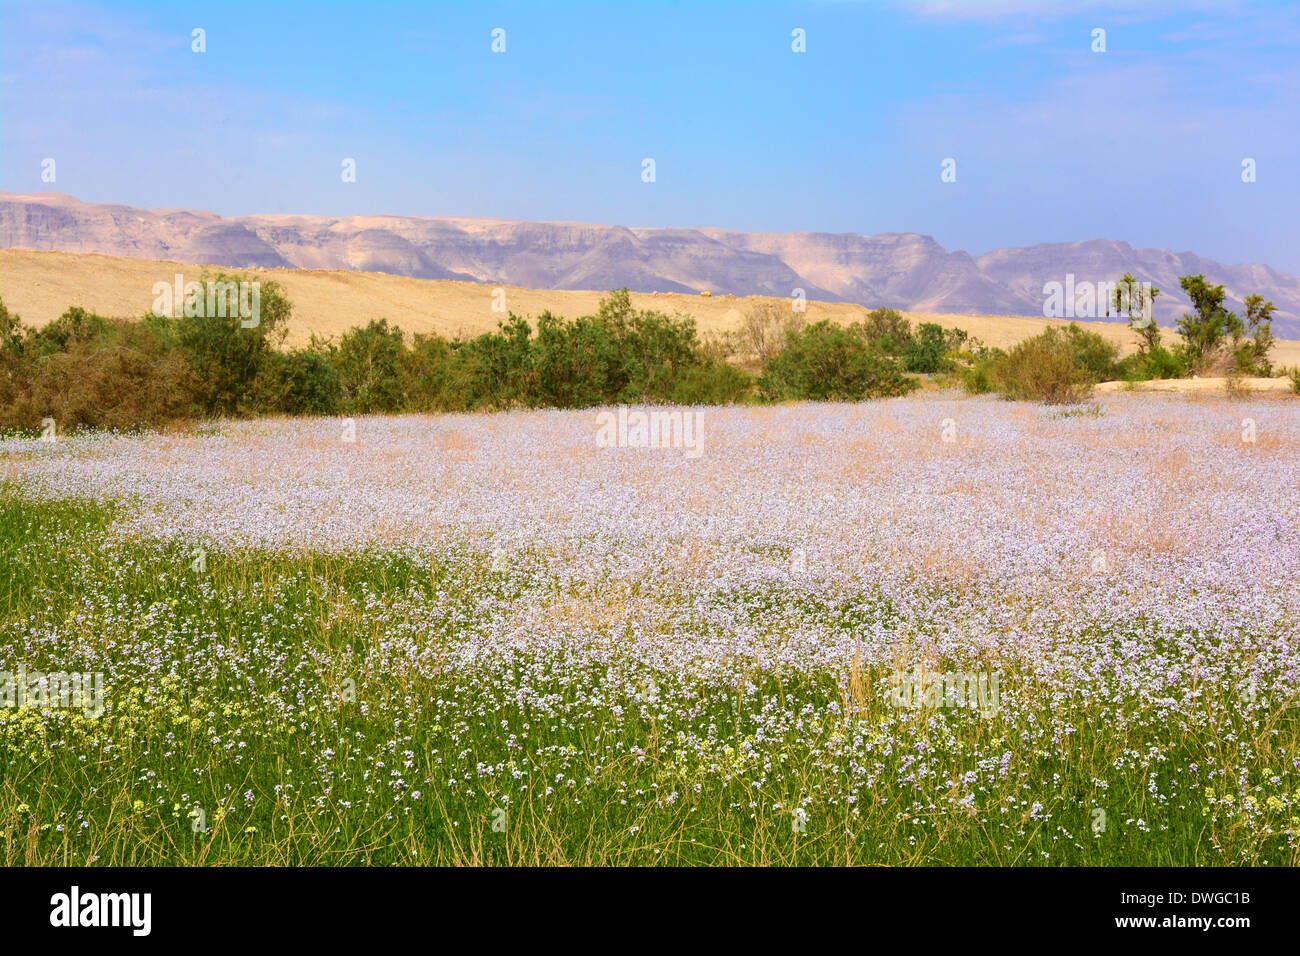 Spring  time near the Dead sea, Israel Stock Photo